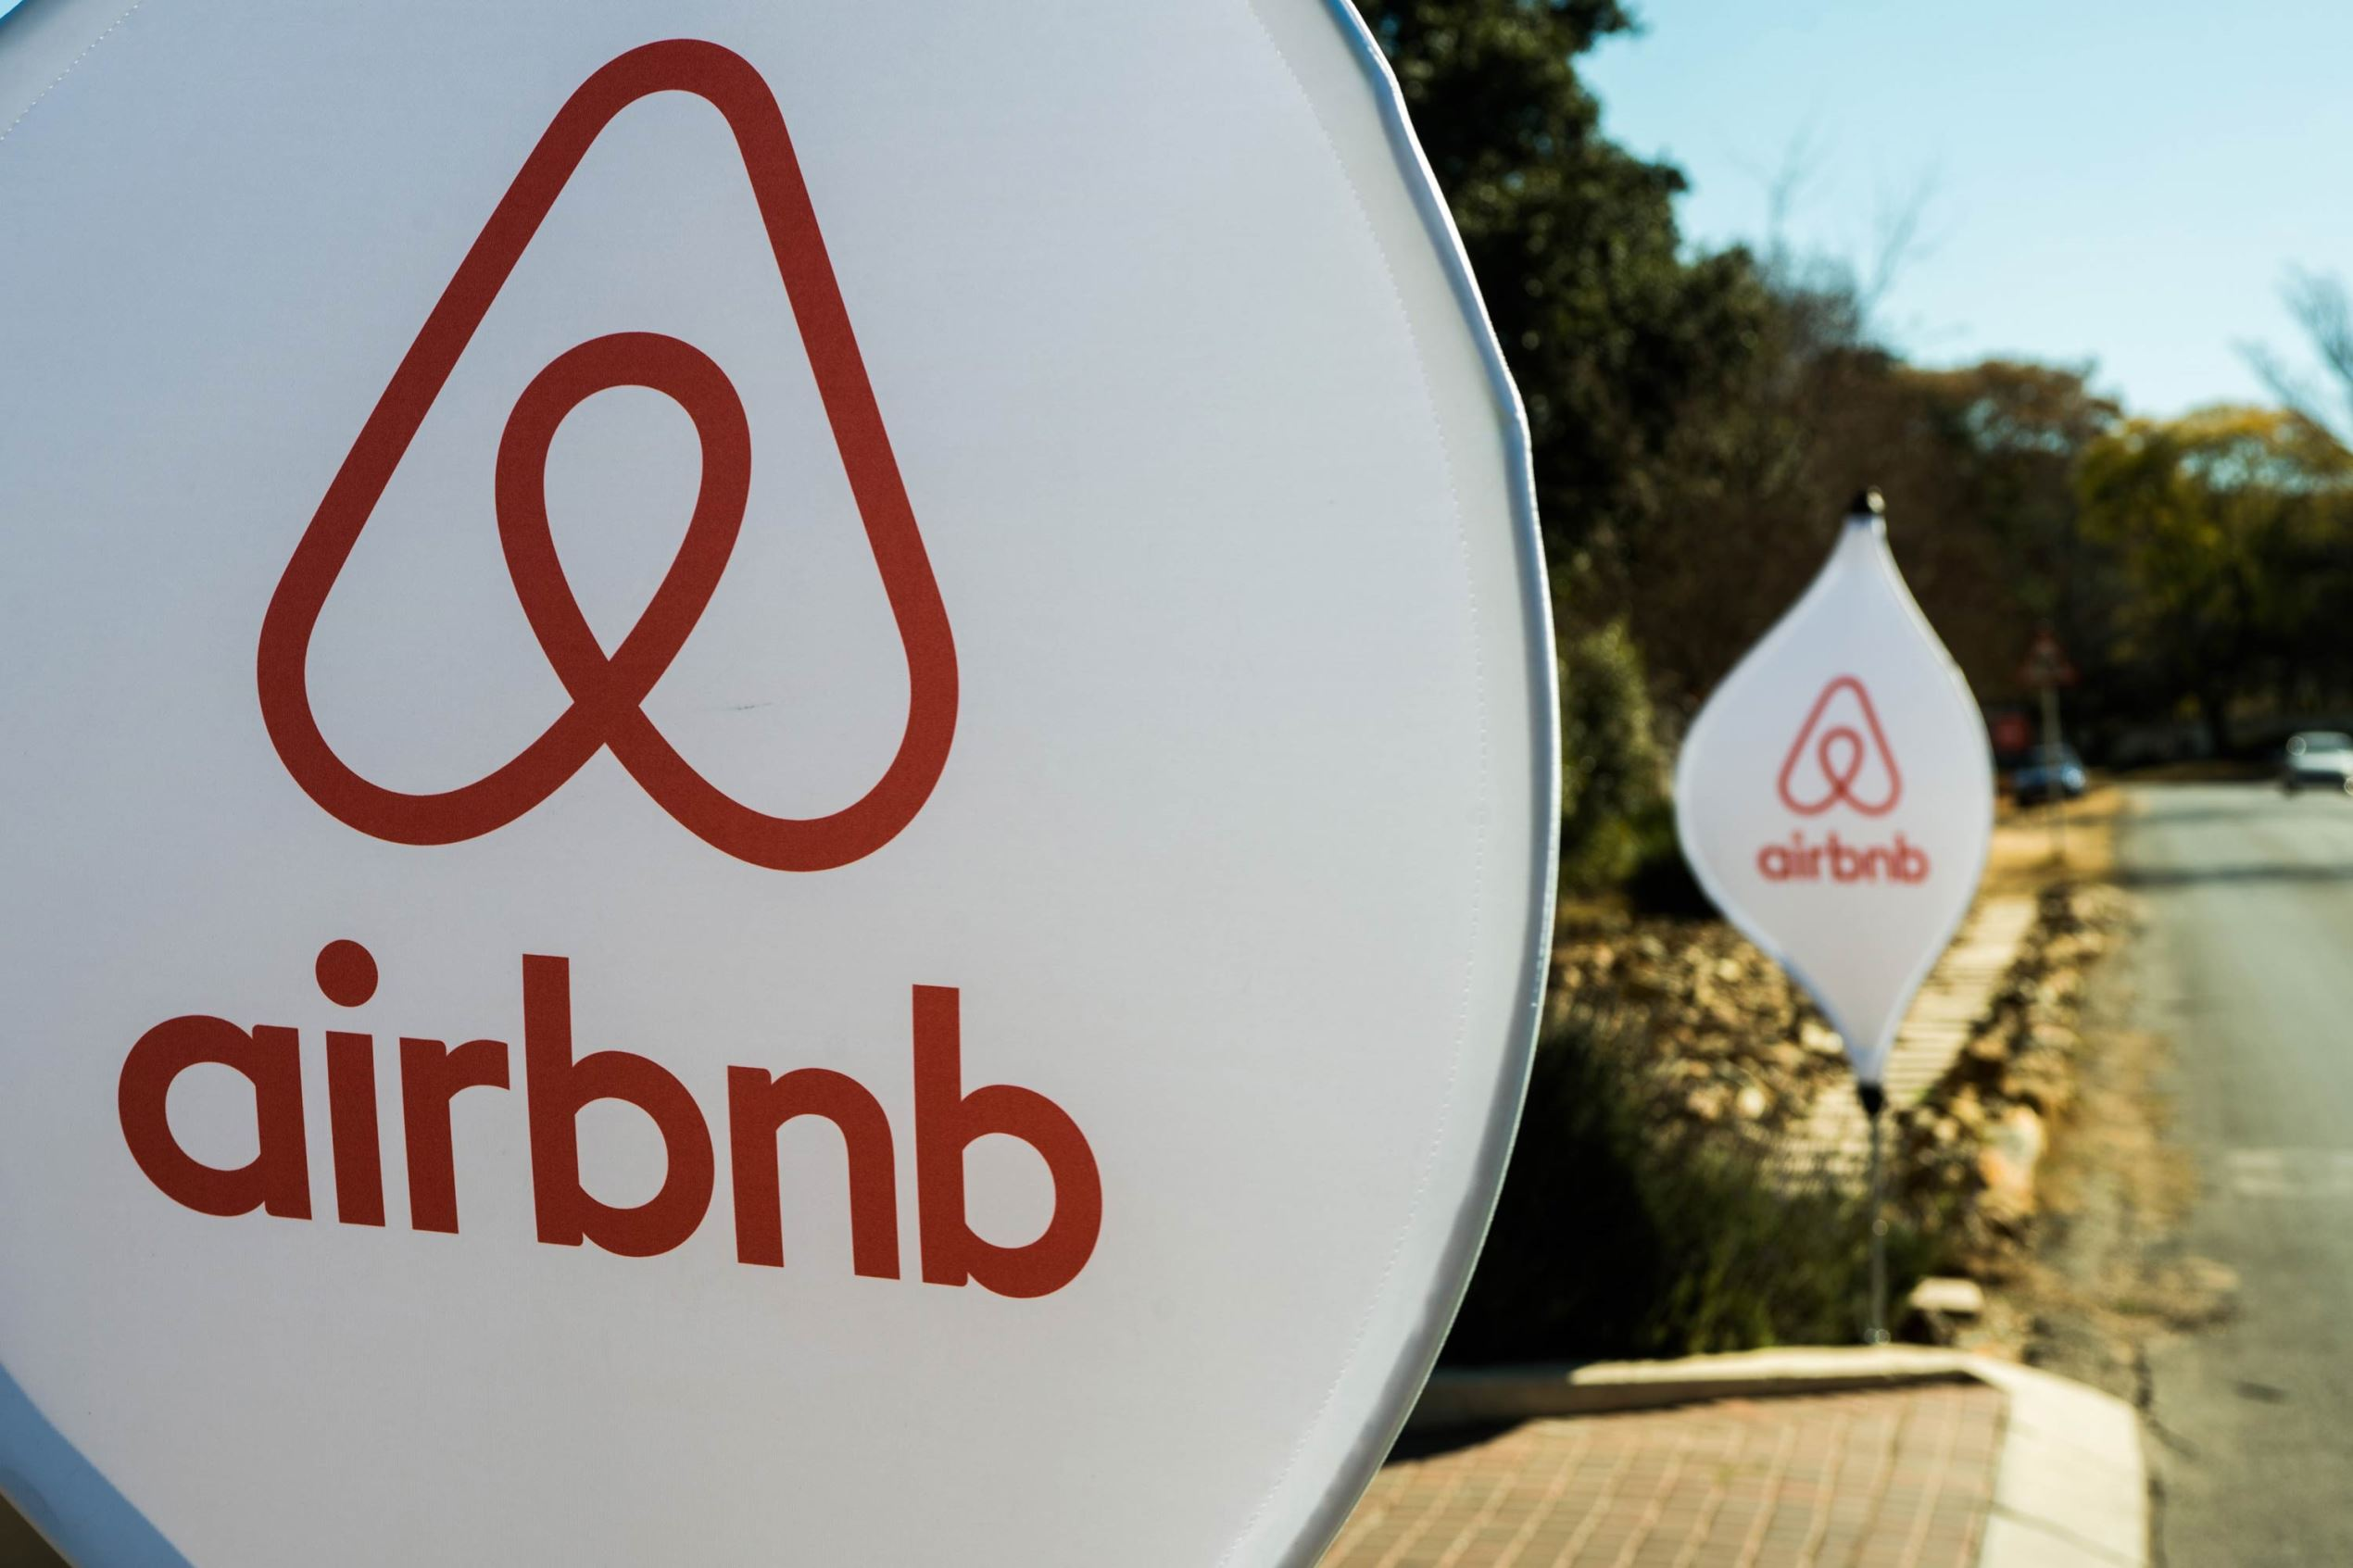 The logos of Airbnb Inc. on banners.